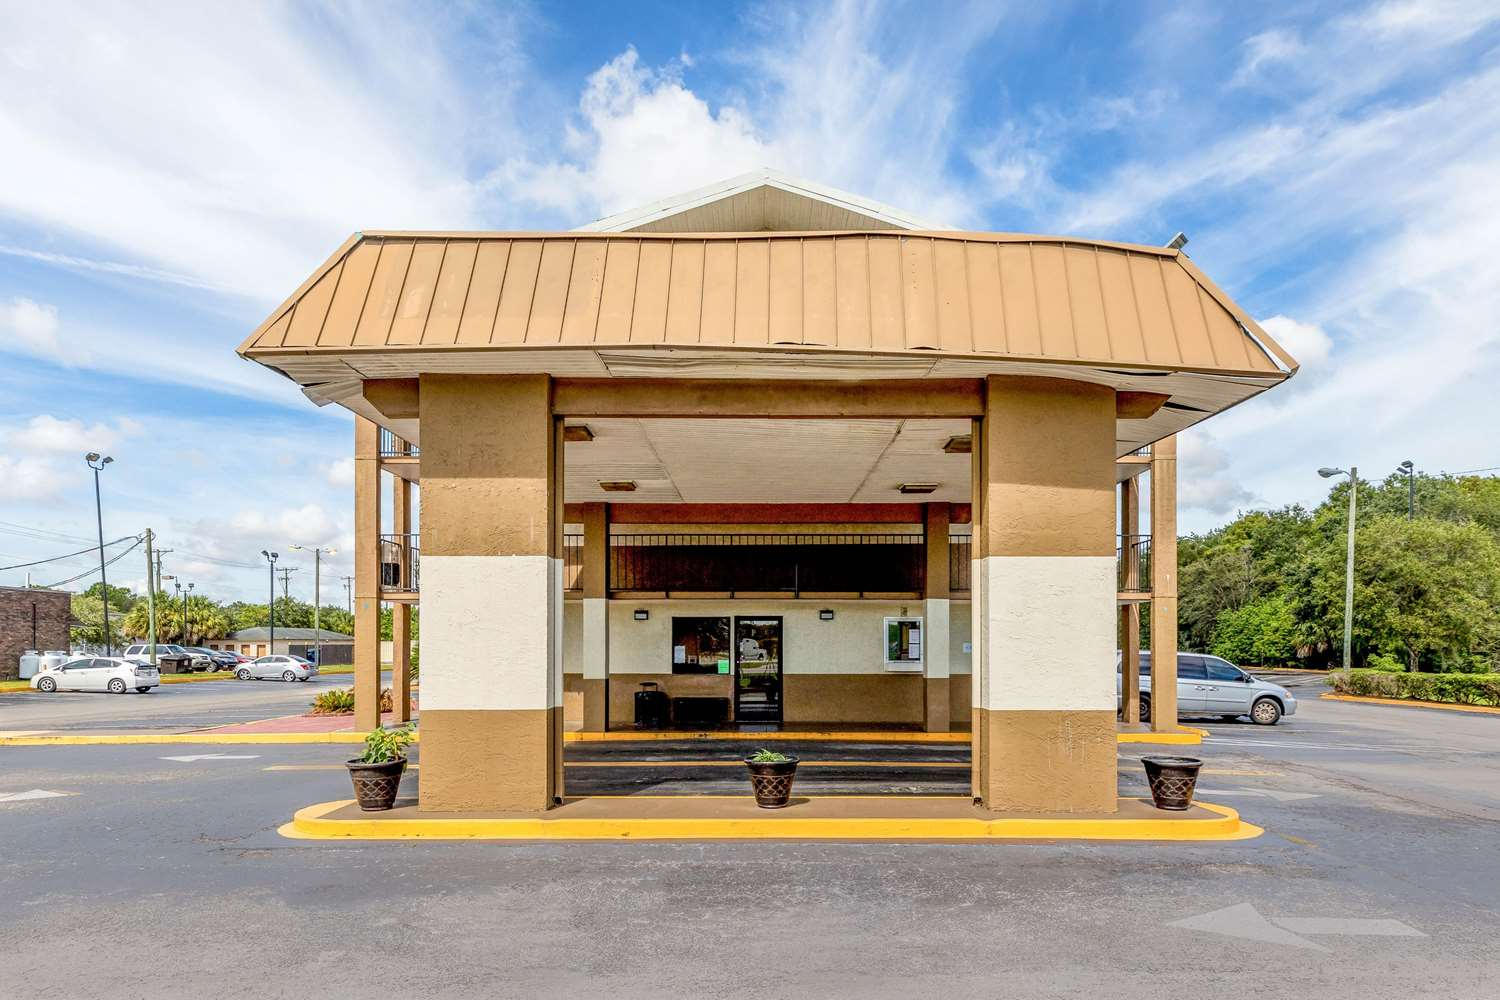 Rodeway Inn State Fairgrounds Tampa, FL - See Discounts